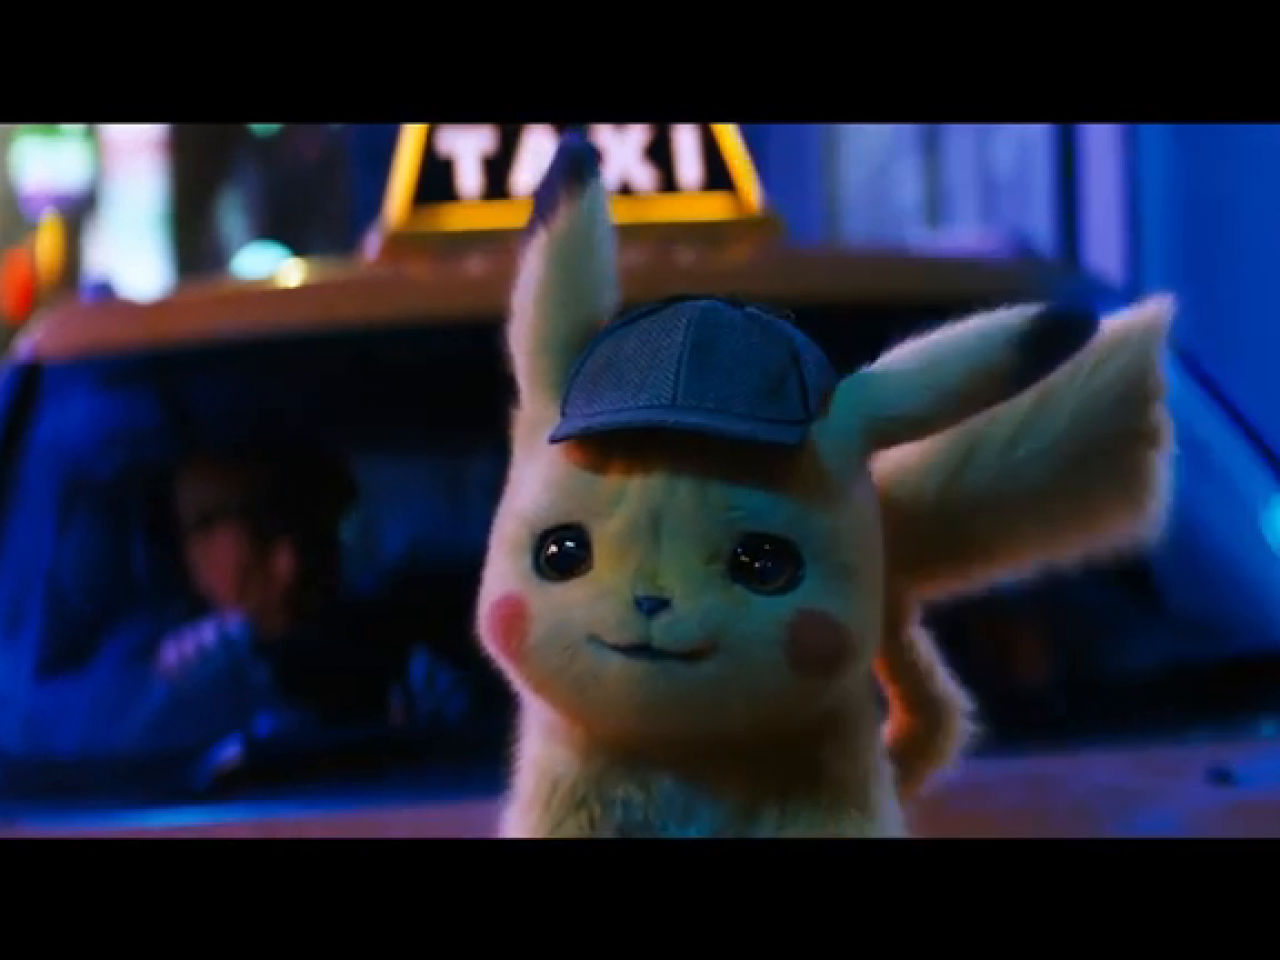 Pokemon Go Update Shiny Aipom And More Included In Detective Pikachu Event